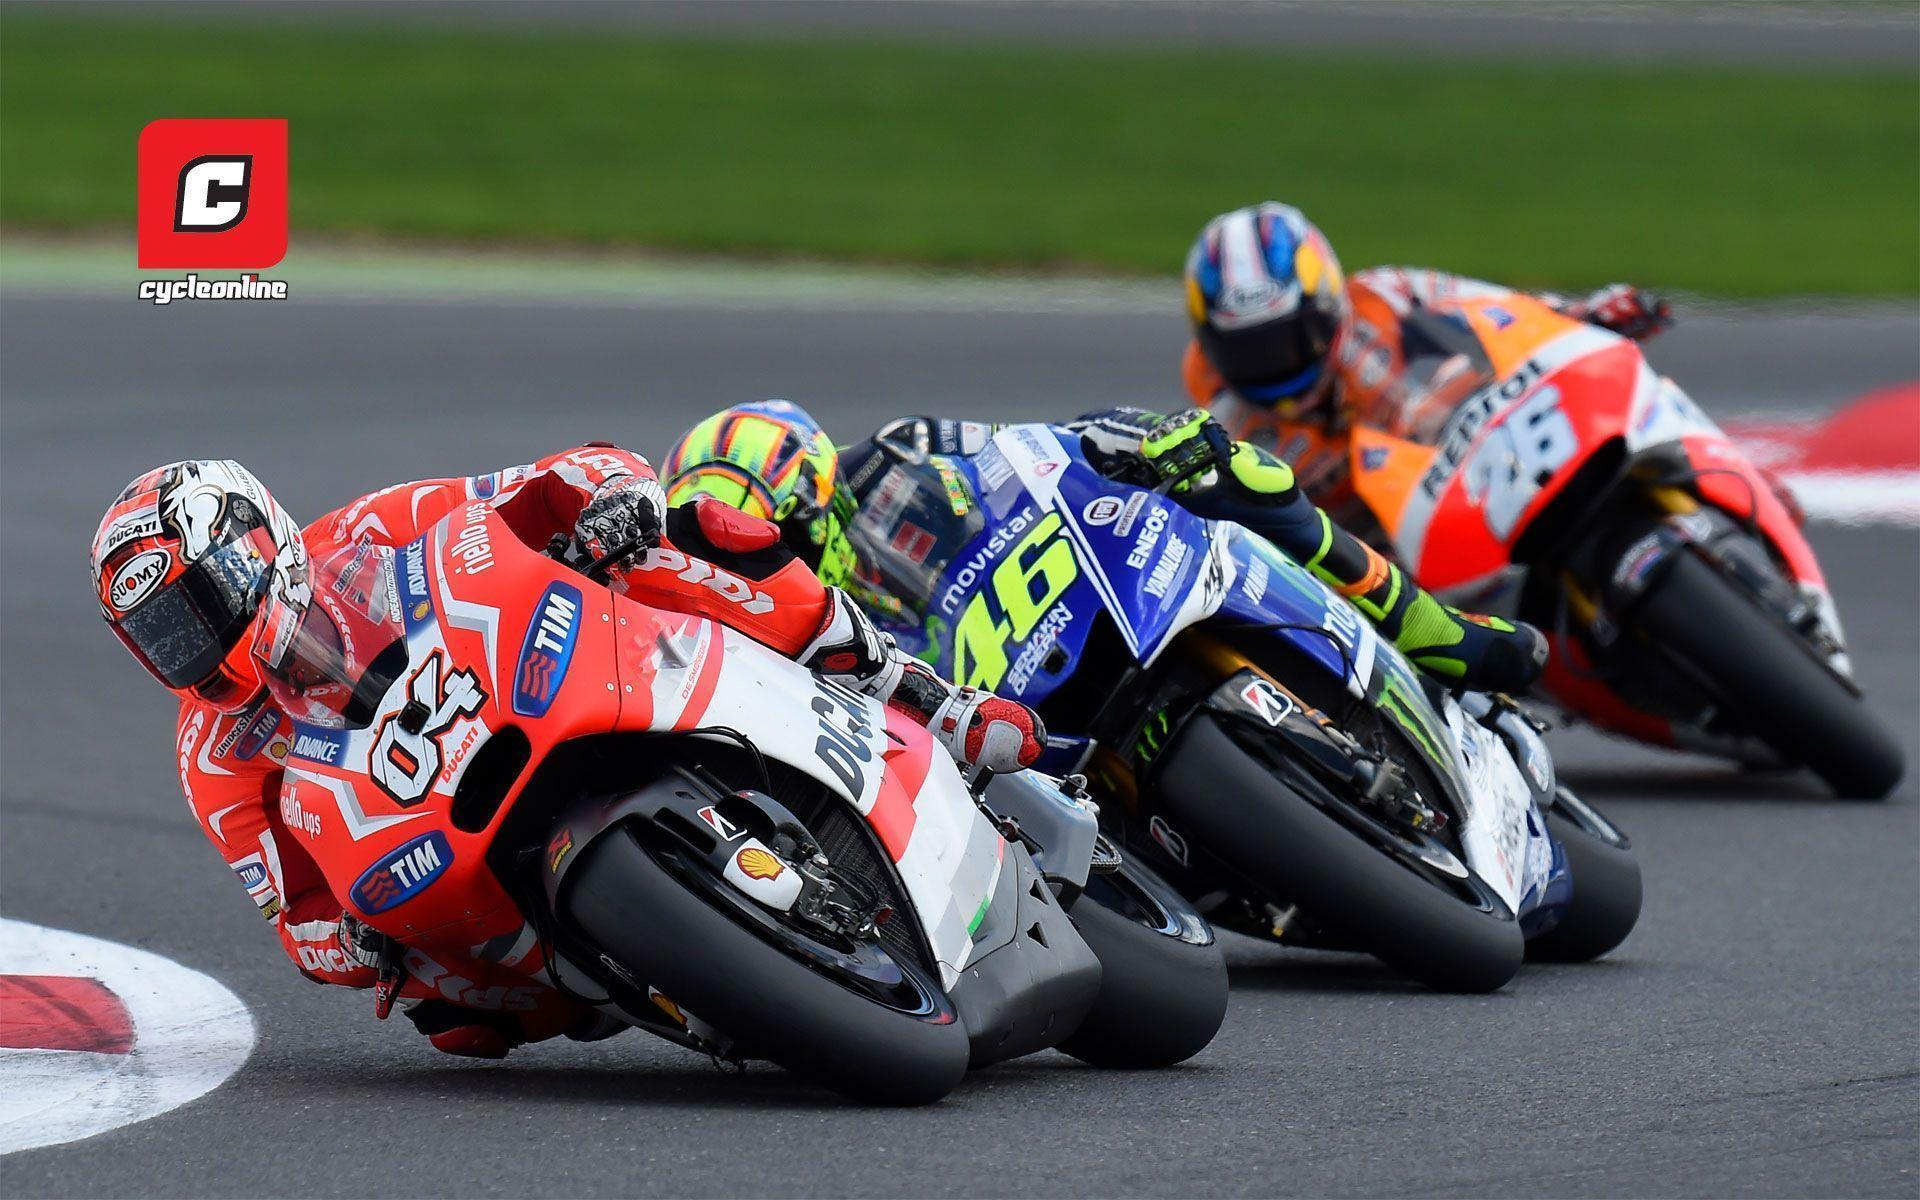 Wednesday Wallpaper: Dovizioso, Rossi and Pedrosa